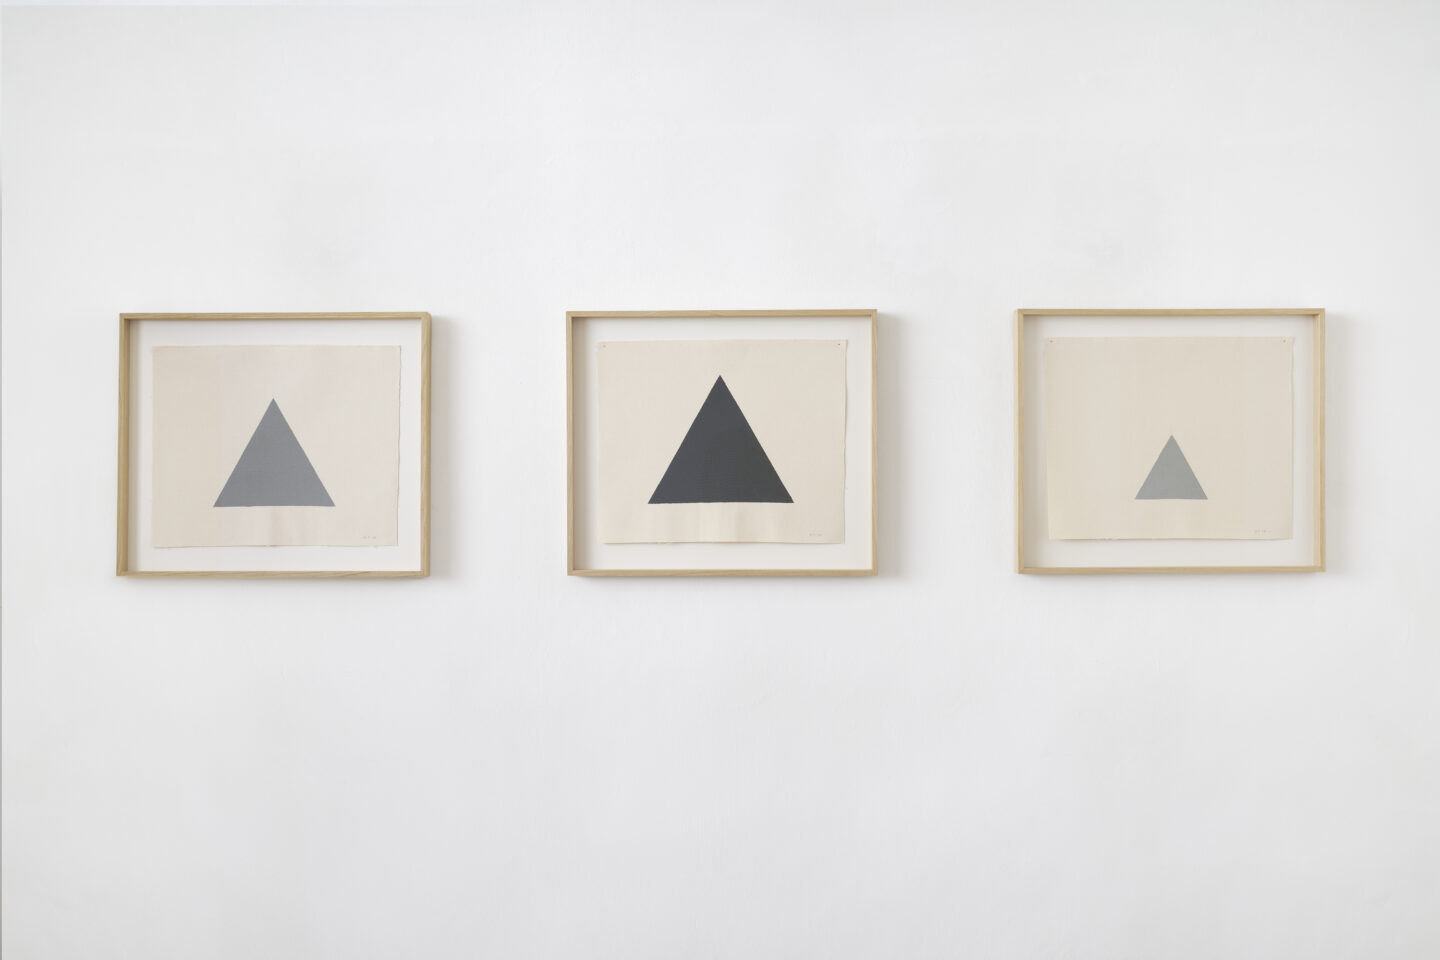 Exhibition View Alan Charlton Soloshow «It Started with a Chameleon; view on Triangle on Canvas (22.5 cm); (27 cm); (13.5), 2014» at Galerie Tschudi, Zuoz, 2019 / Photo: Ralph Feiner, Malans / courtesy: the artist and Galerie Tschudi